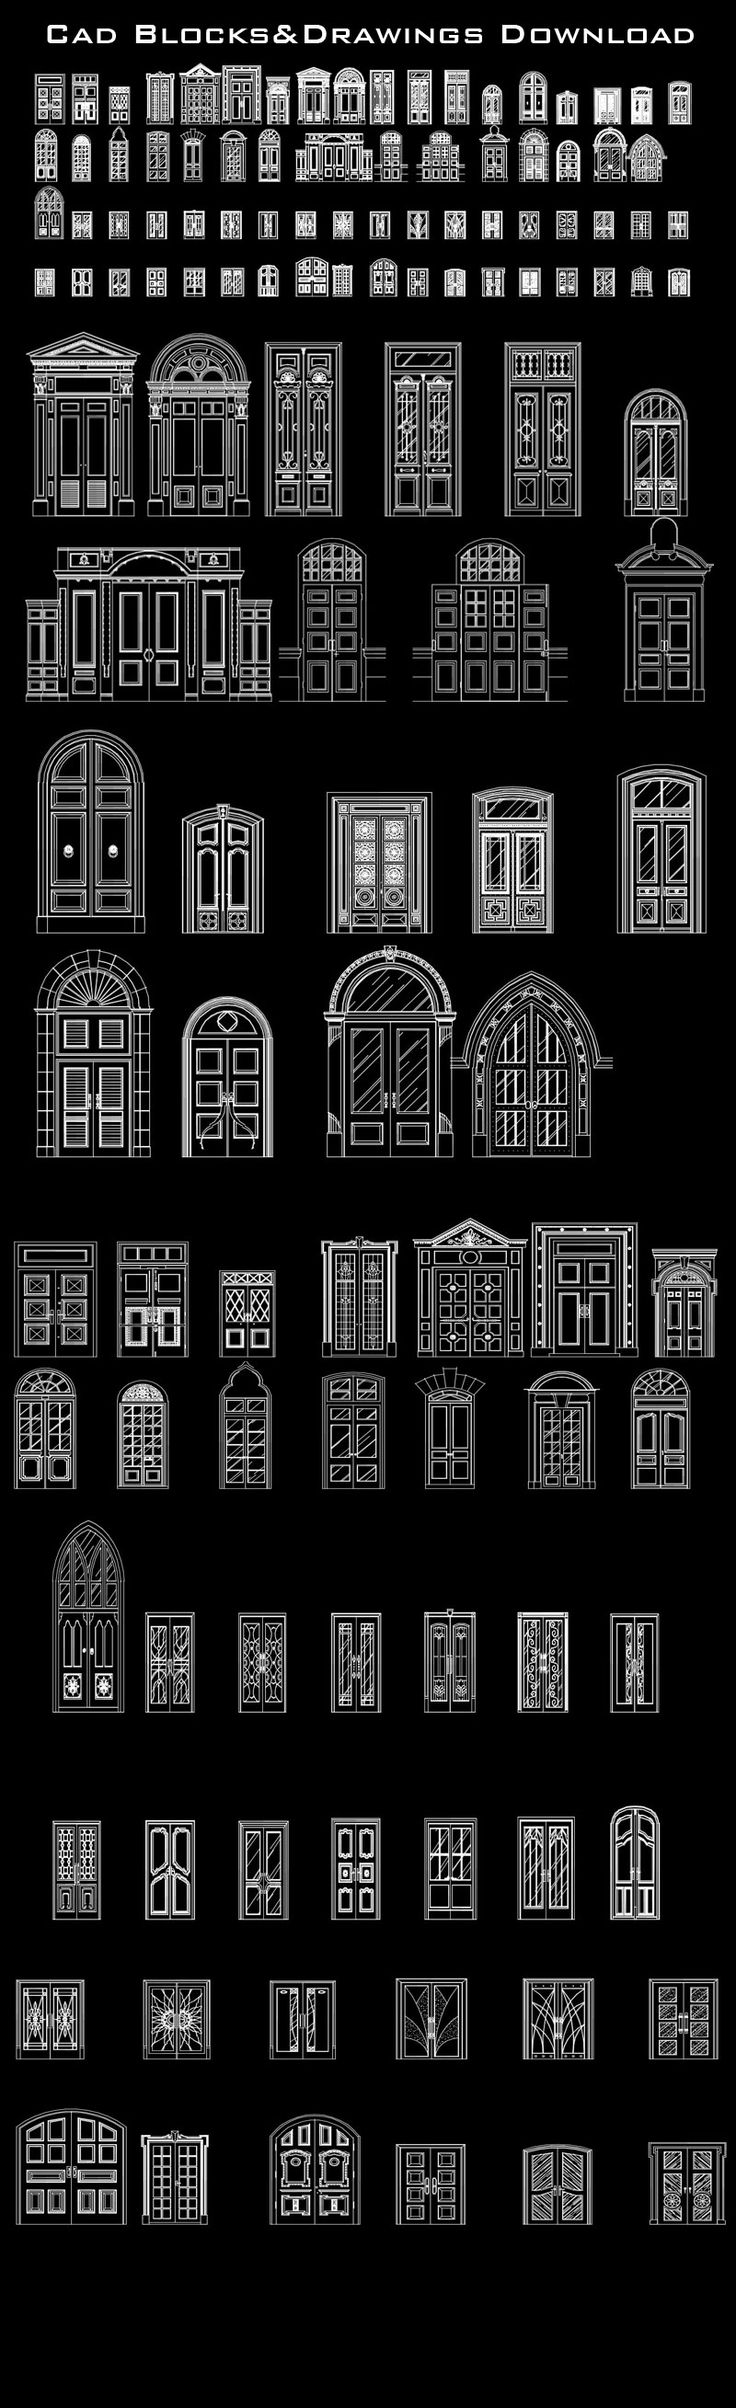 【Best door design ideas-CAD Door drawings download】Download These Cad Blocks and Drawings now!! (https://www.cadblocksdownload.com/) Decorative Elements,Carried of viceroys,Outdoor Decoration,Columns,CAD blocks for outdoor living design projects    Beautiful Clive Christian Kitchen,Large Round Dining Table,Neoclassical Interiors,Antique Living Room,Large Round Table,Lappato Tile,Neoclassical,Neoclassical Design,Modern Meets Classic,Clive Christian,Neoclassical Table,Aura Tile,Neoclassi